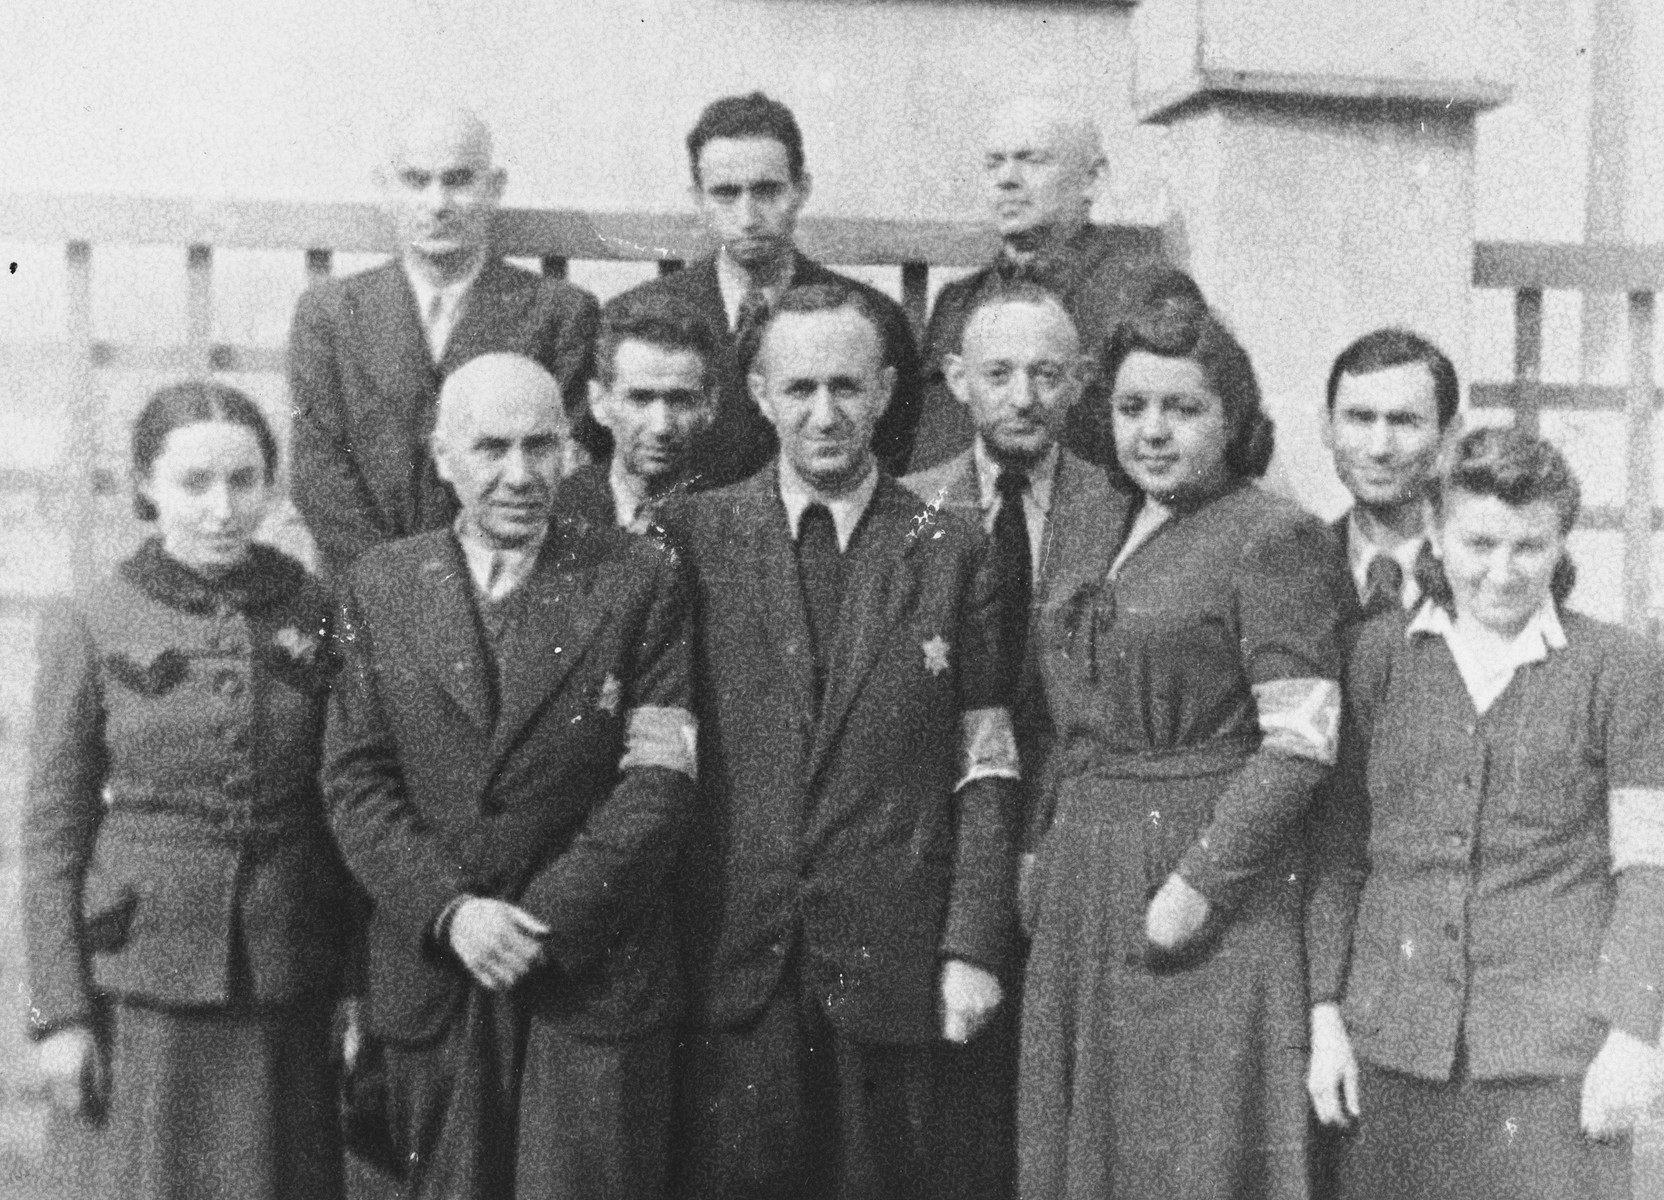 Group portrait of members of the Vilna ghetto Jewish police.  Among those pictured is Ferdinand Beigel (front row center).